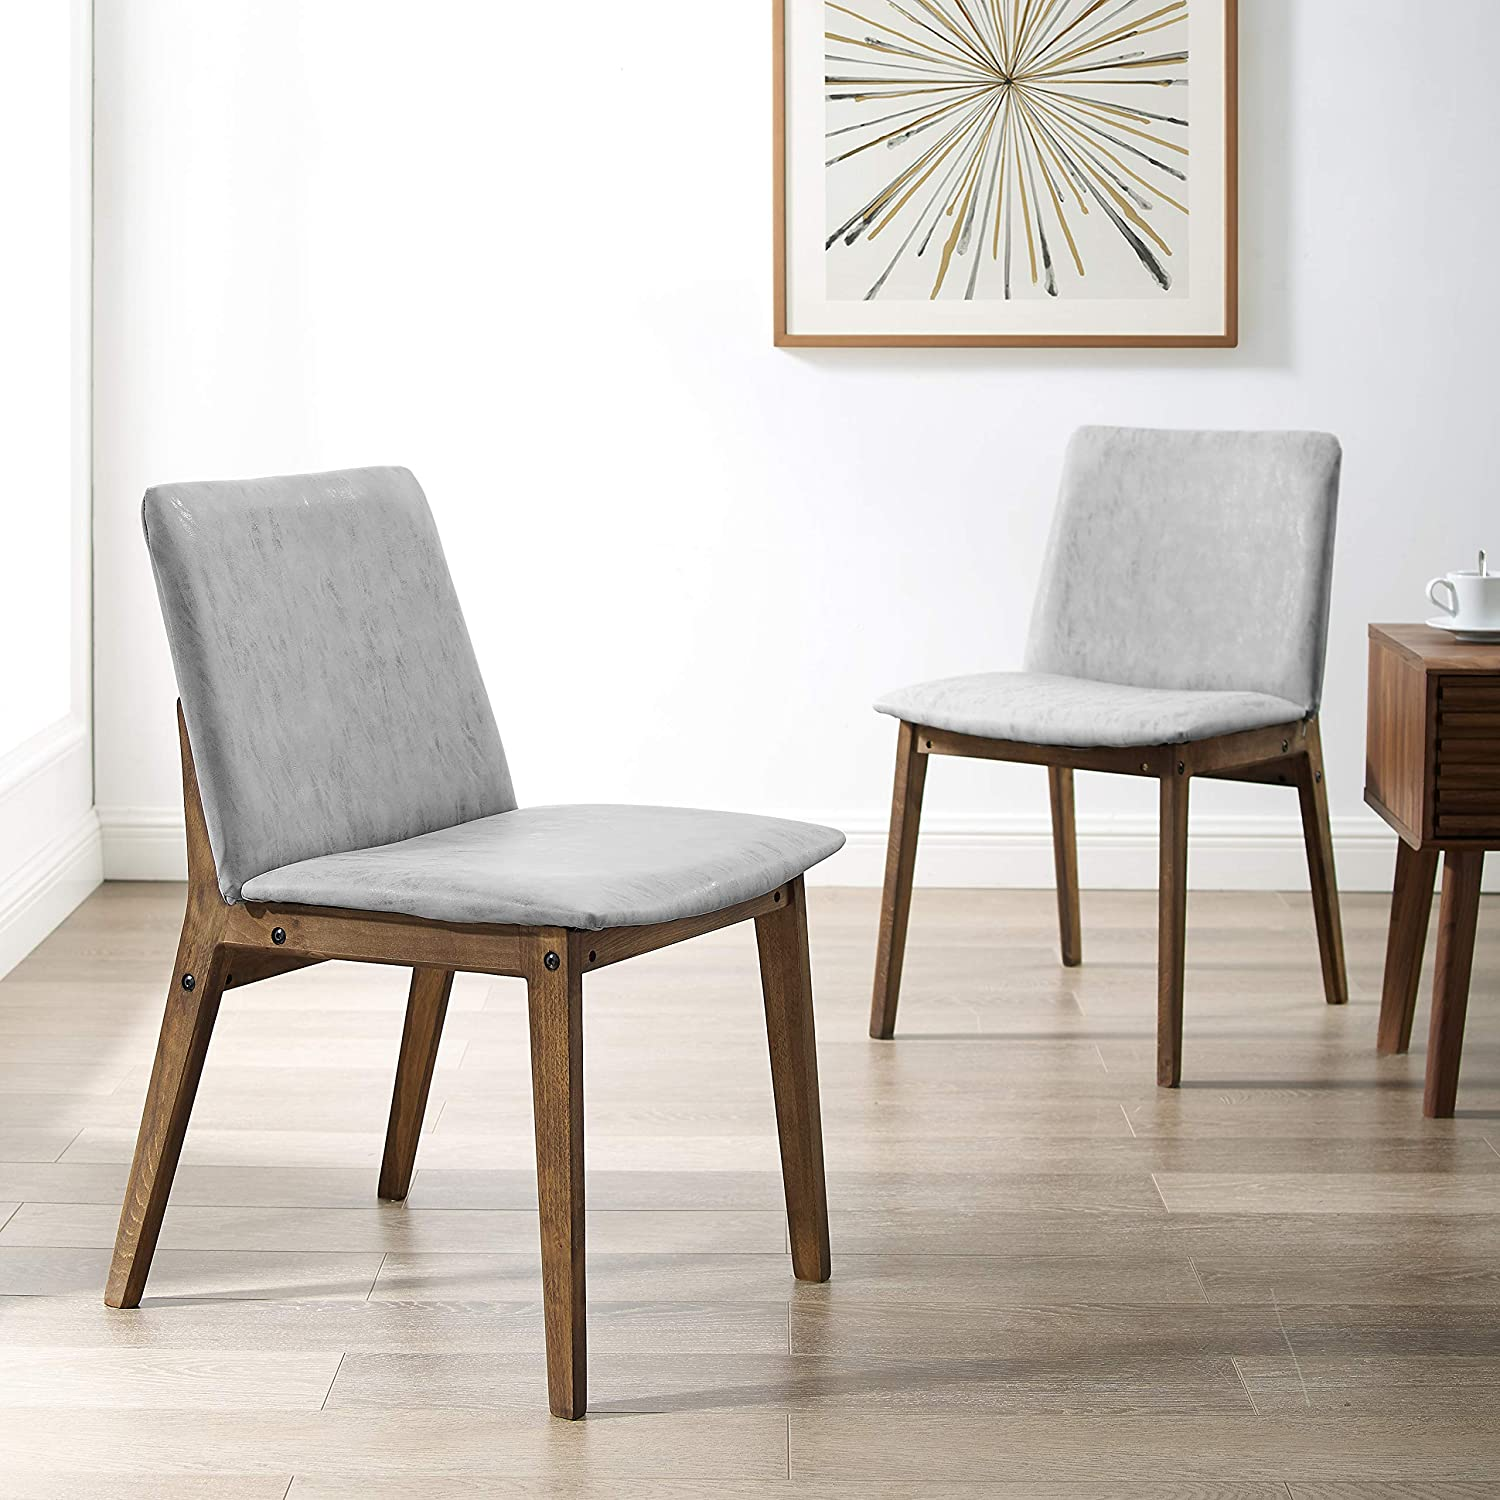 Amazon.com: Art Leon Wooden Chairs Set of 2 with Cushioned Seat and ...